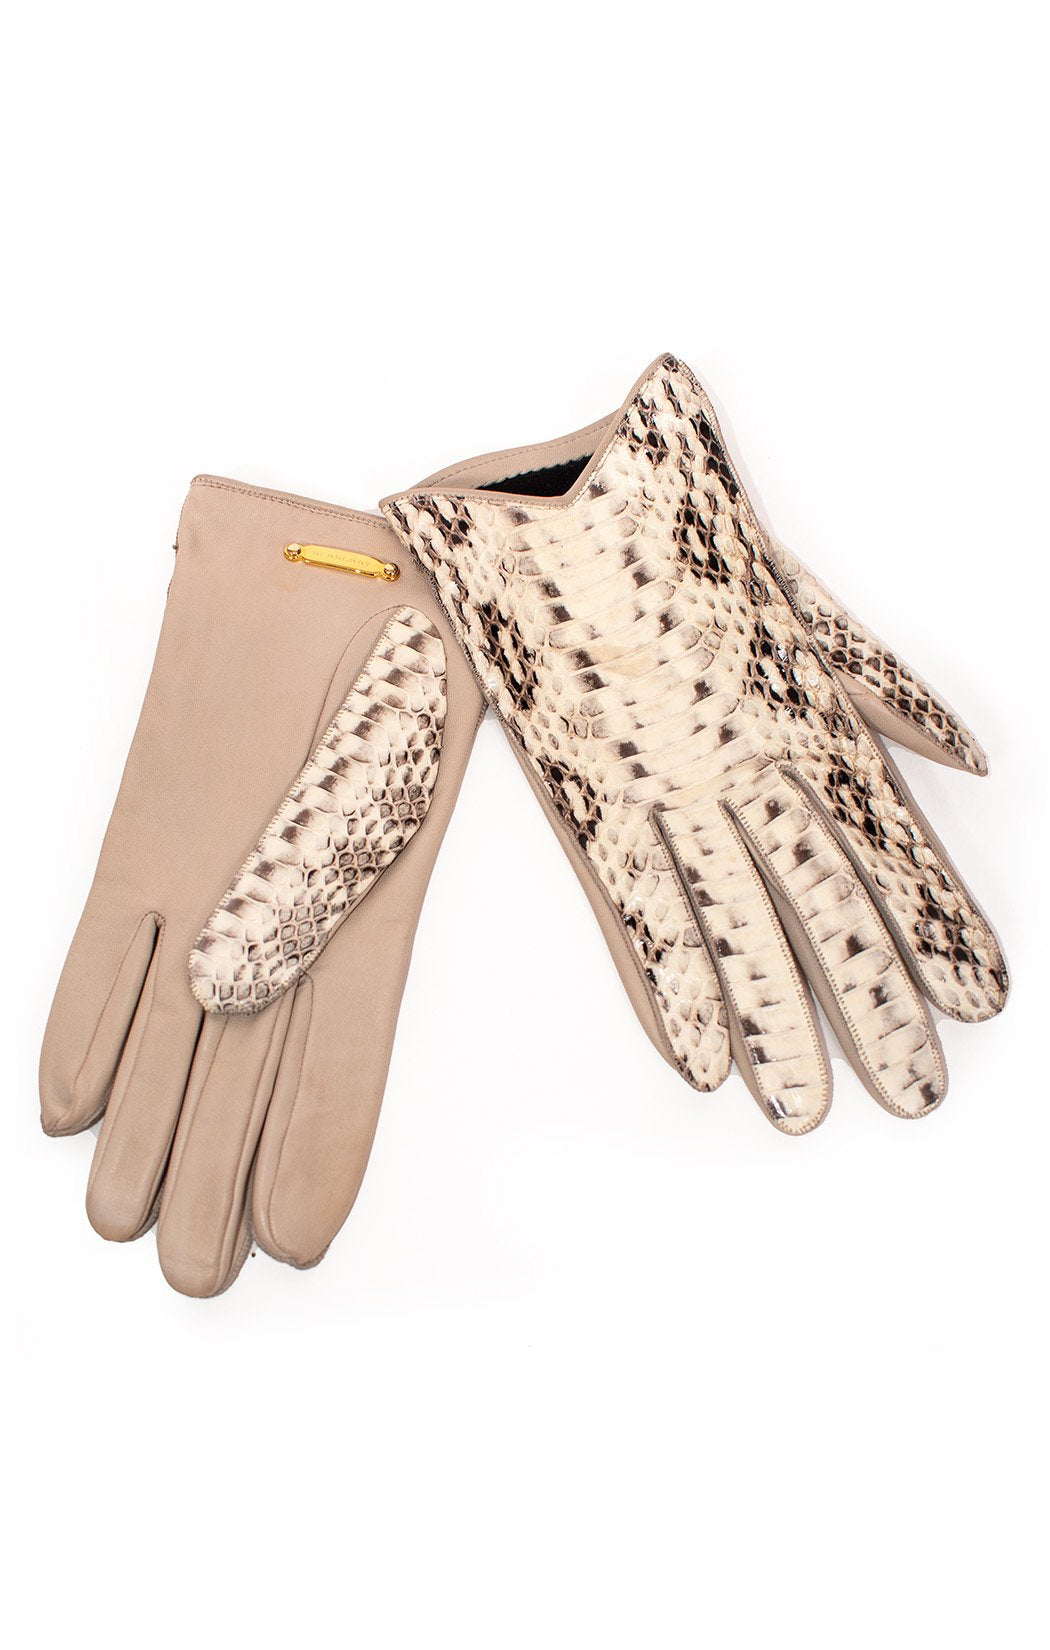 Additional view of BURBERRY Gloves